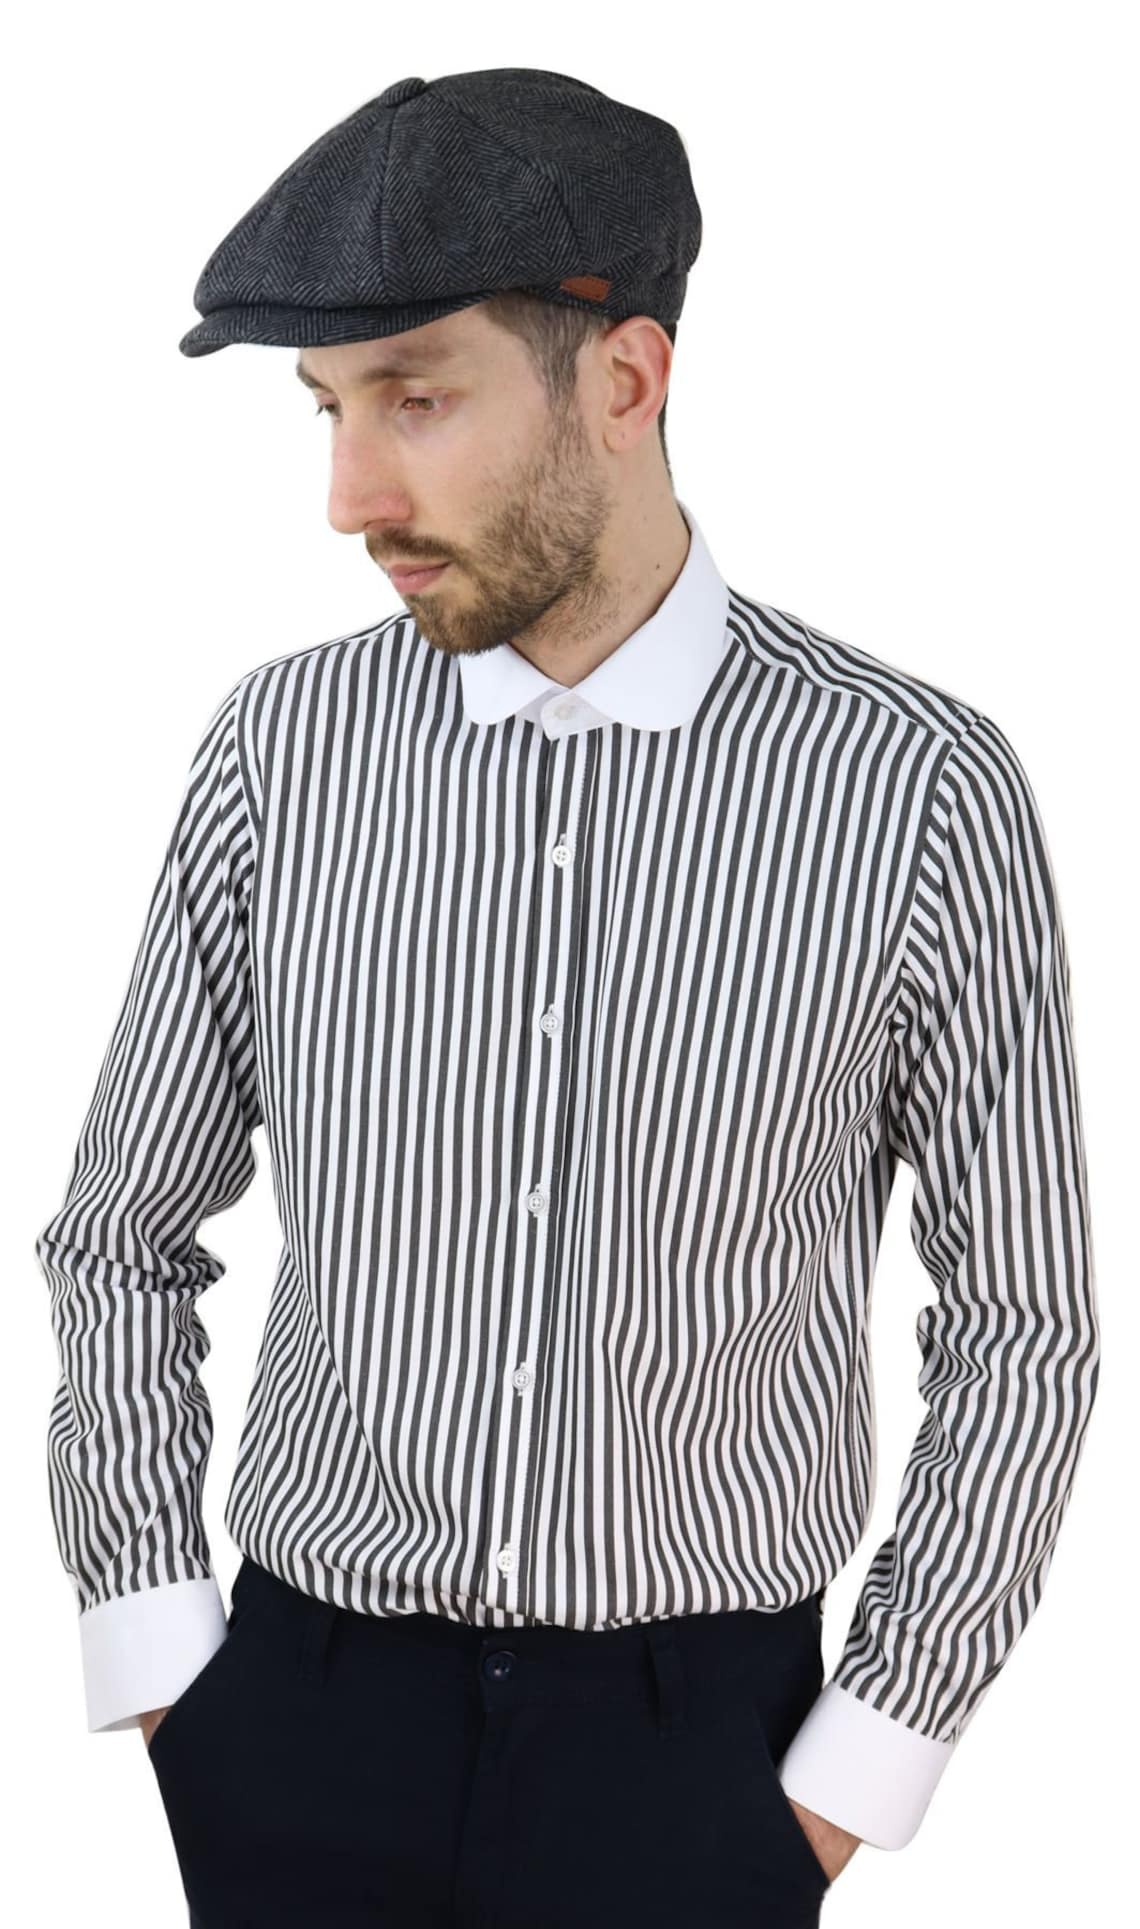 1920s Men's Shirts and Collars History     Mens penny button shirt round collar  stripe regular fit classic $33.17 AT vintagedancer.com